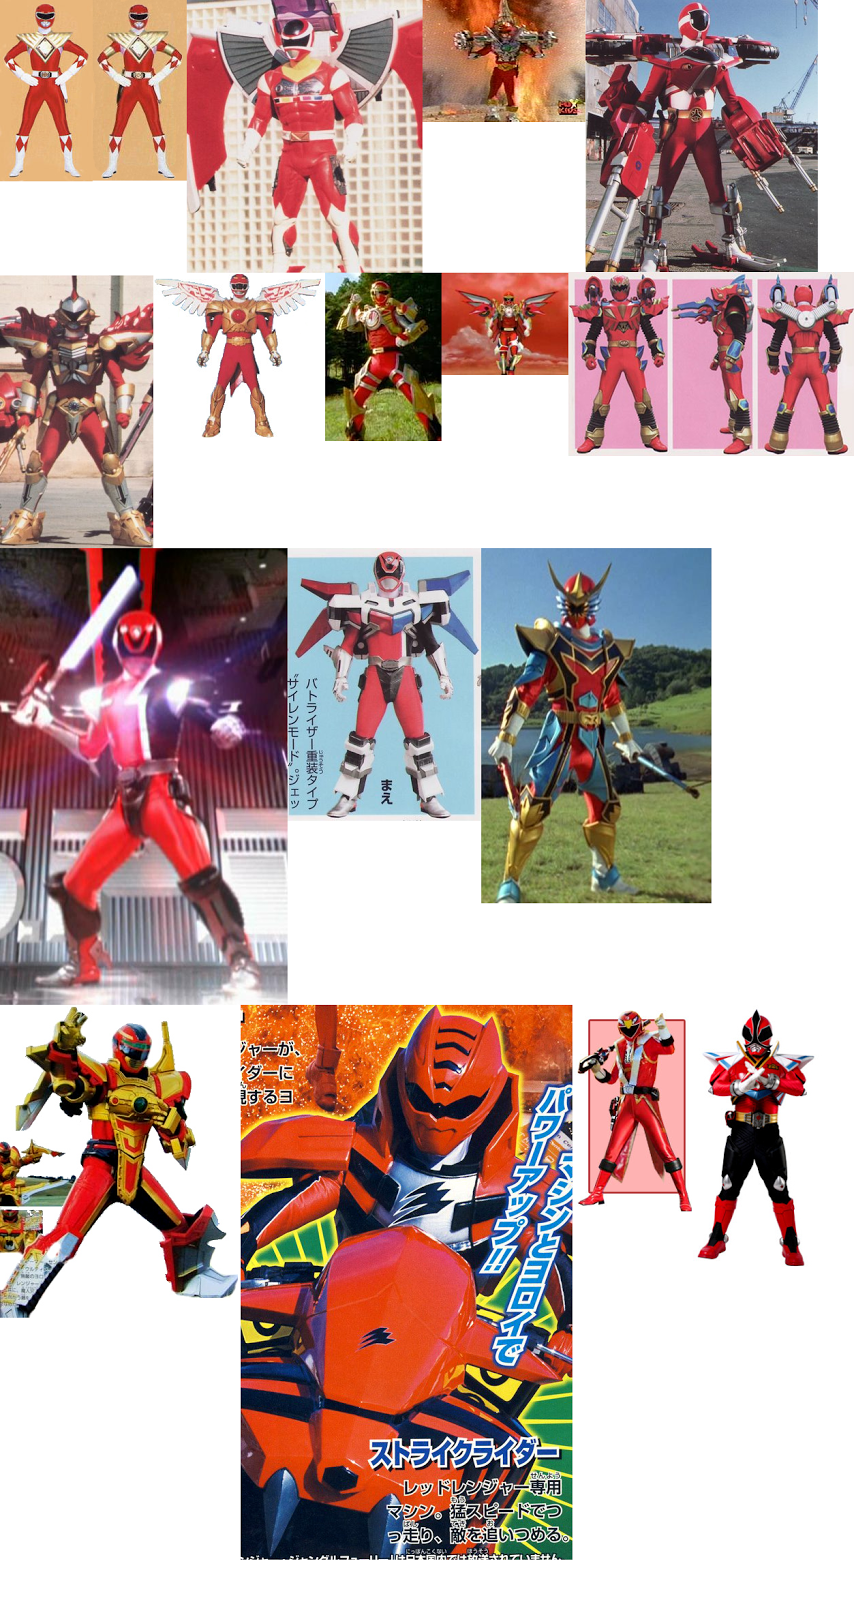 60c3ed284 Here s part 12 of 12 for my 20th anniversary project of Power Rangers. I  will upload the collage first on Blogger